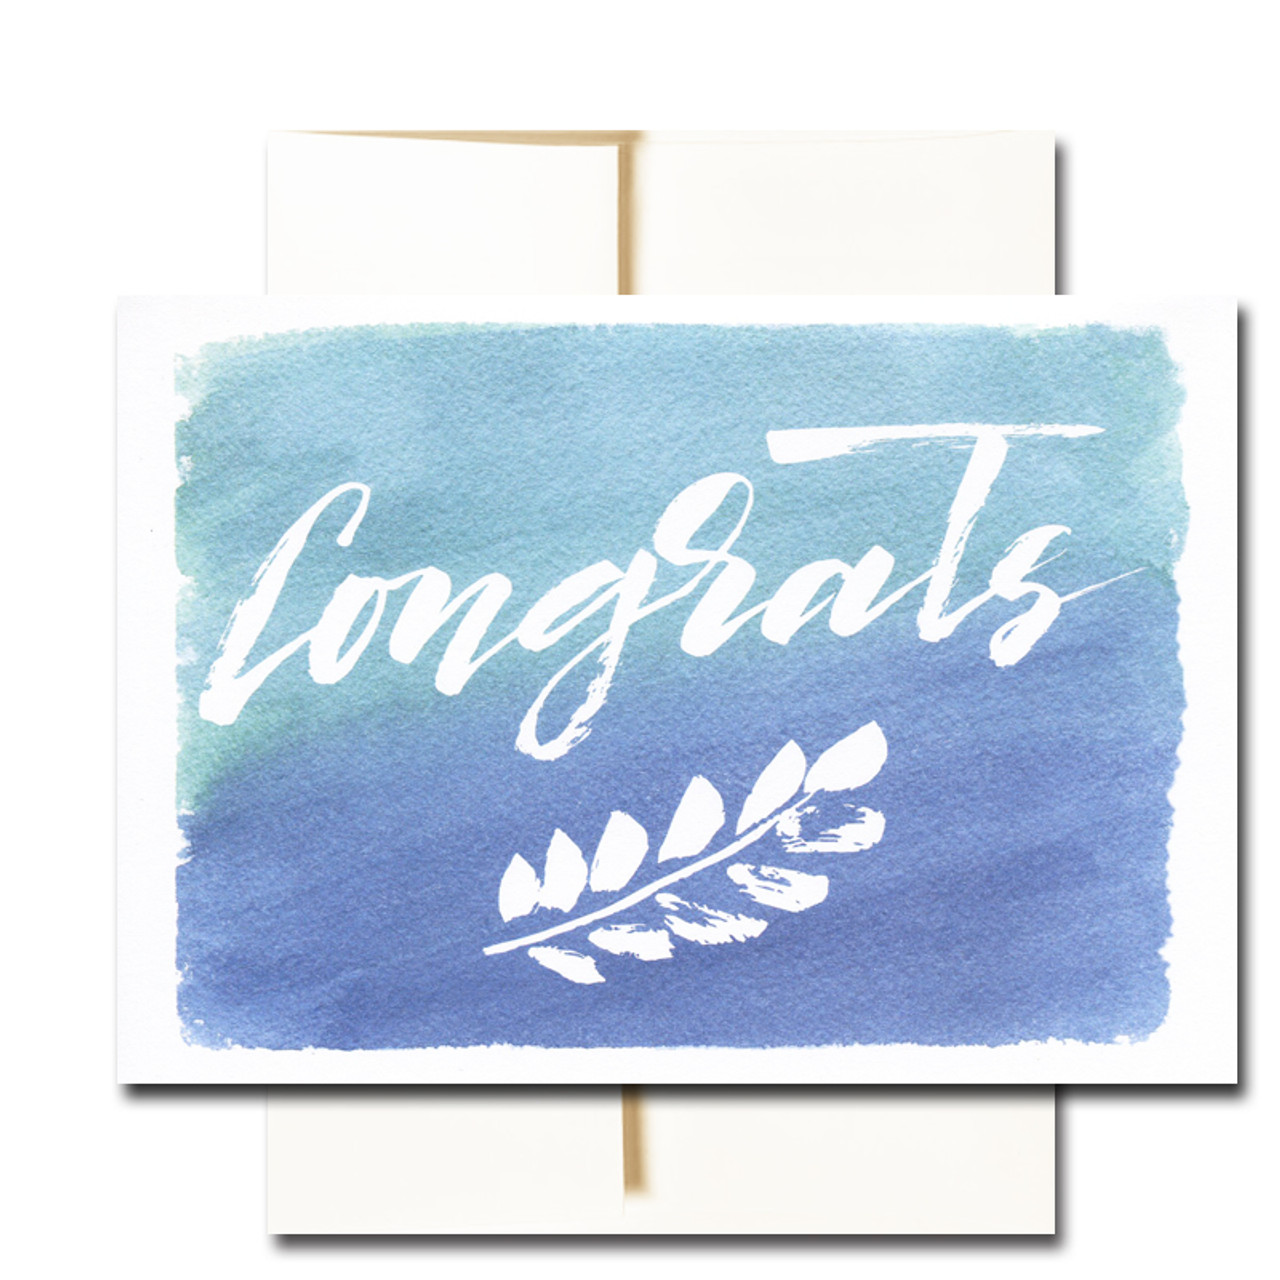 "Business Congratulations Note Card  has the word ""Congrats"" in hand-drawn lettering along with a leaf design on a hand-painted watercolor background"